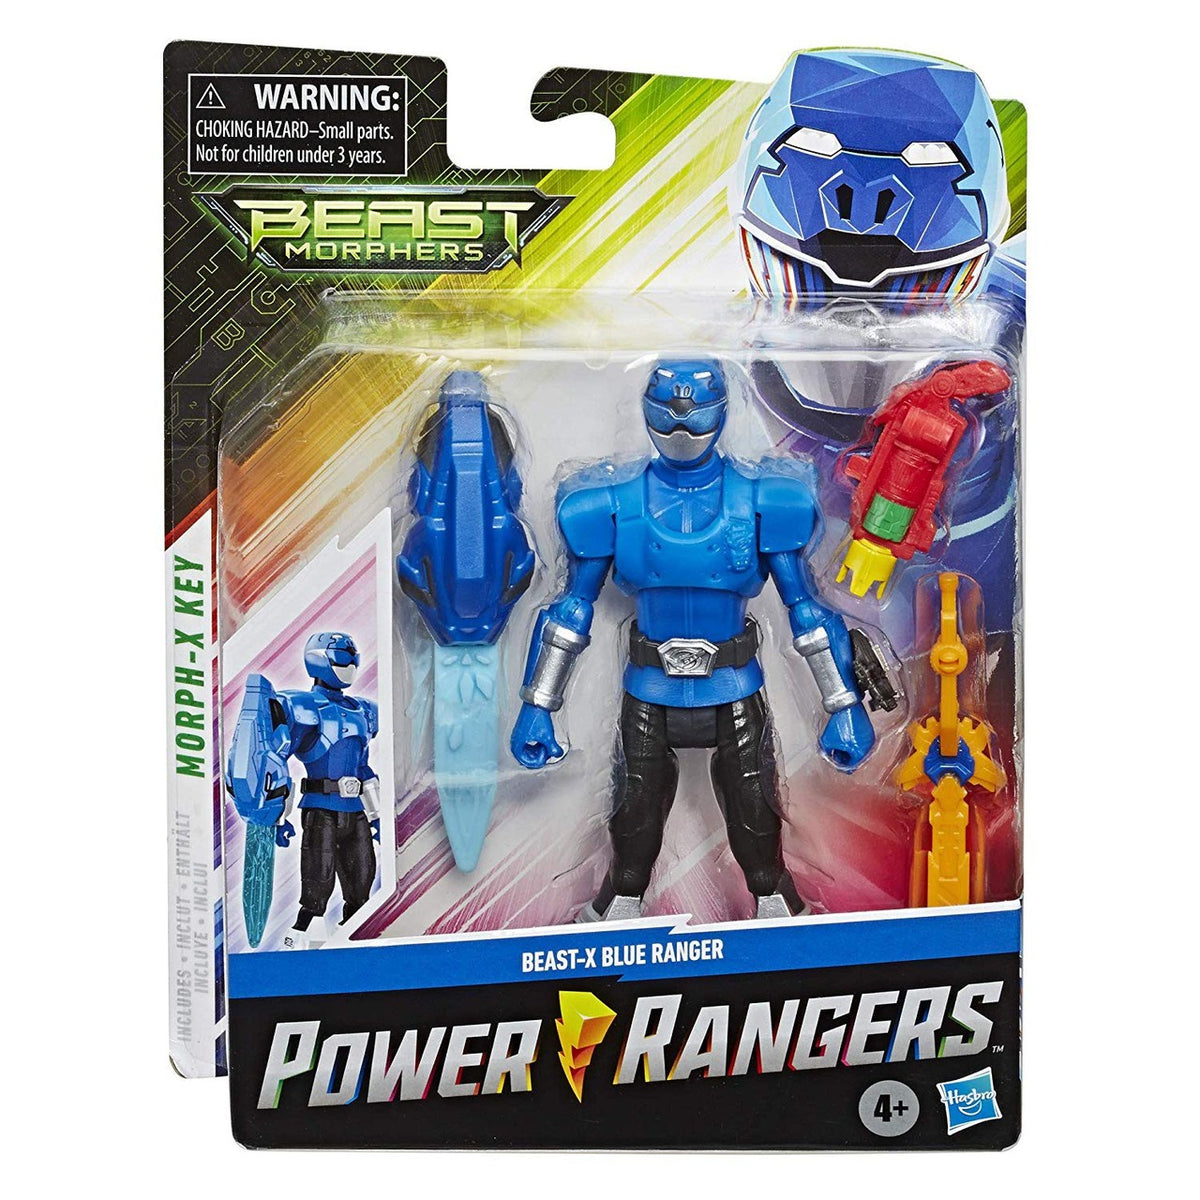 POWER RANGERS BLUE RANGER BEAST X MODE | Toyworld Frankston | Toyworld Frankston